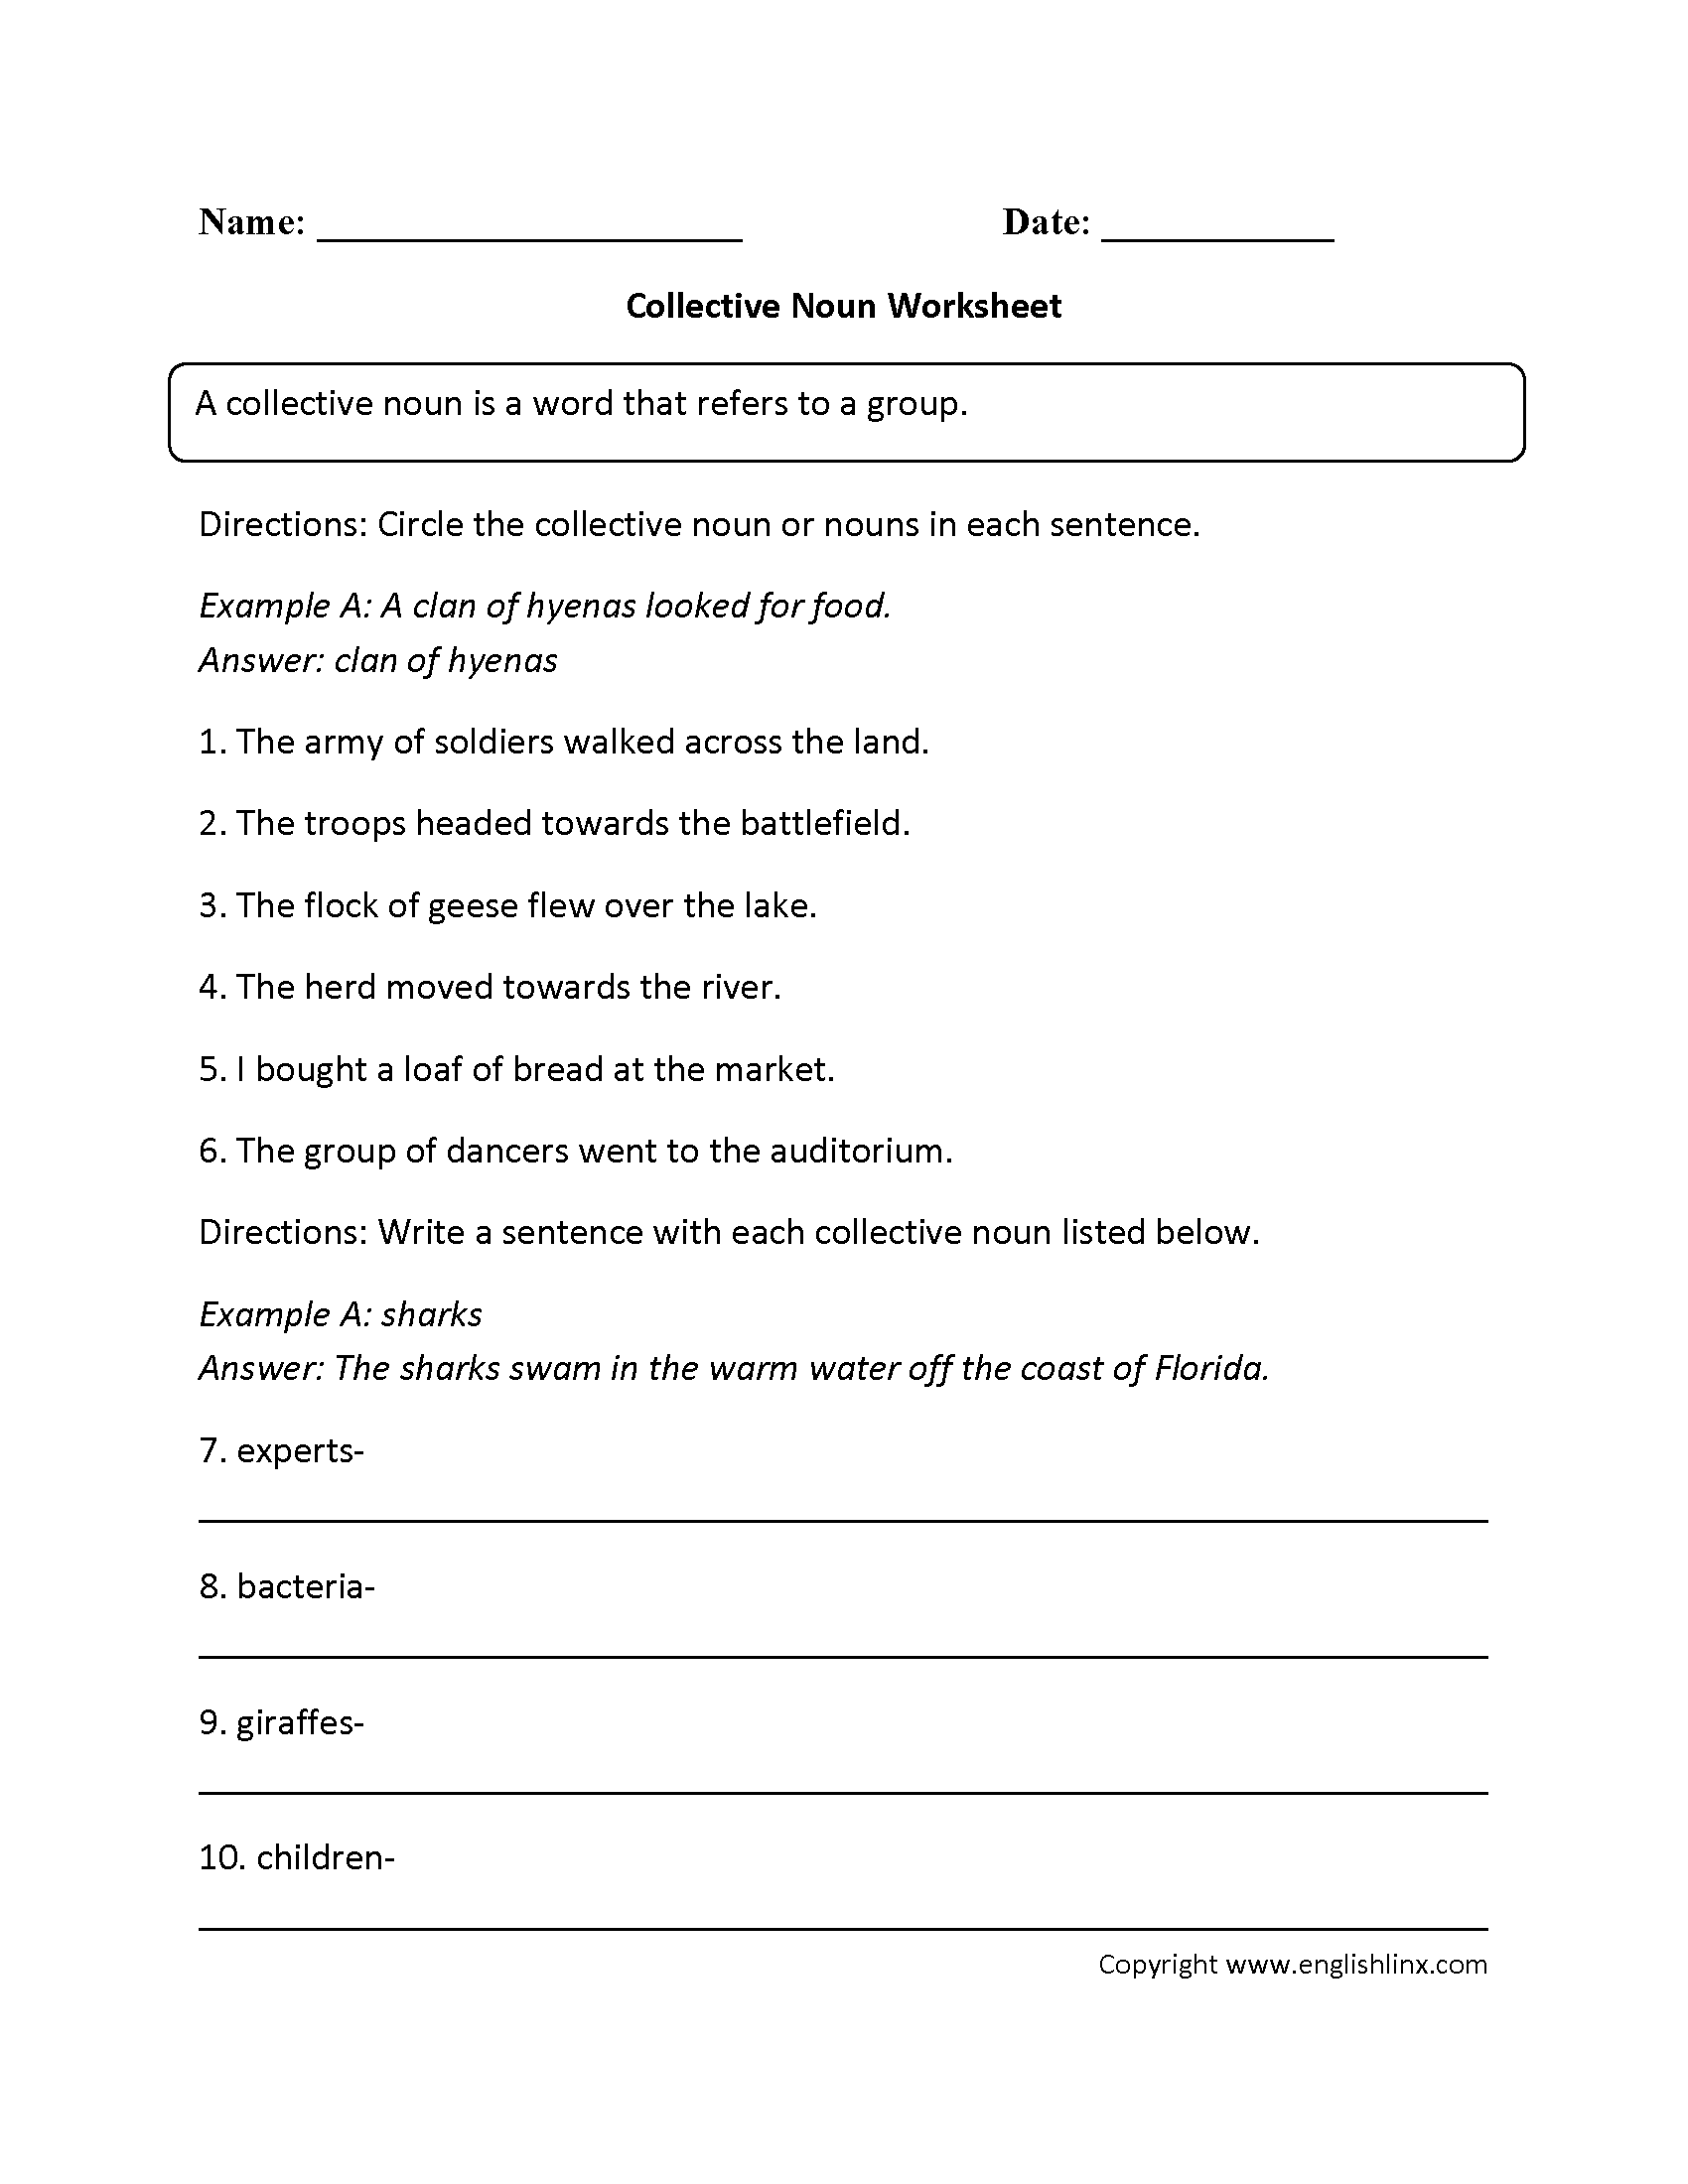 Worksheets English Worksheets englishlinx com english worksheets nouns worksheets